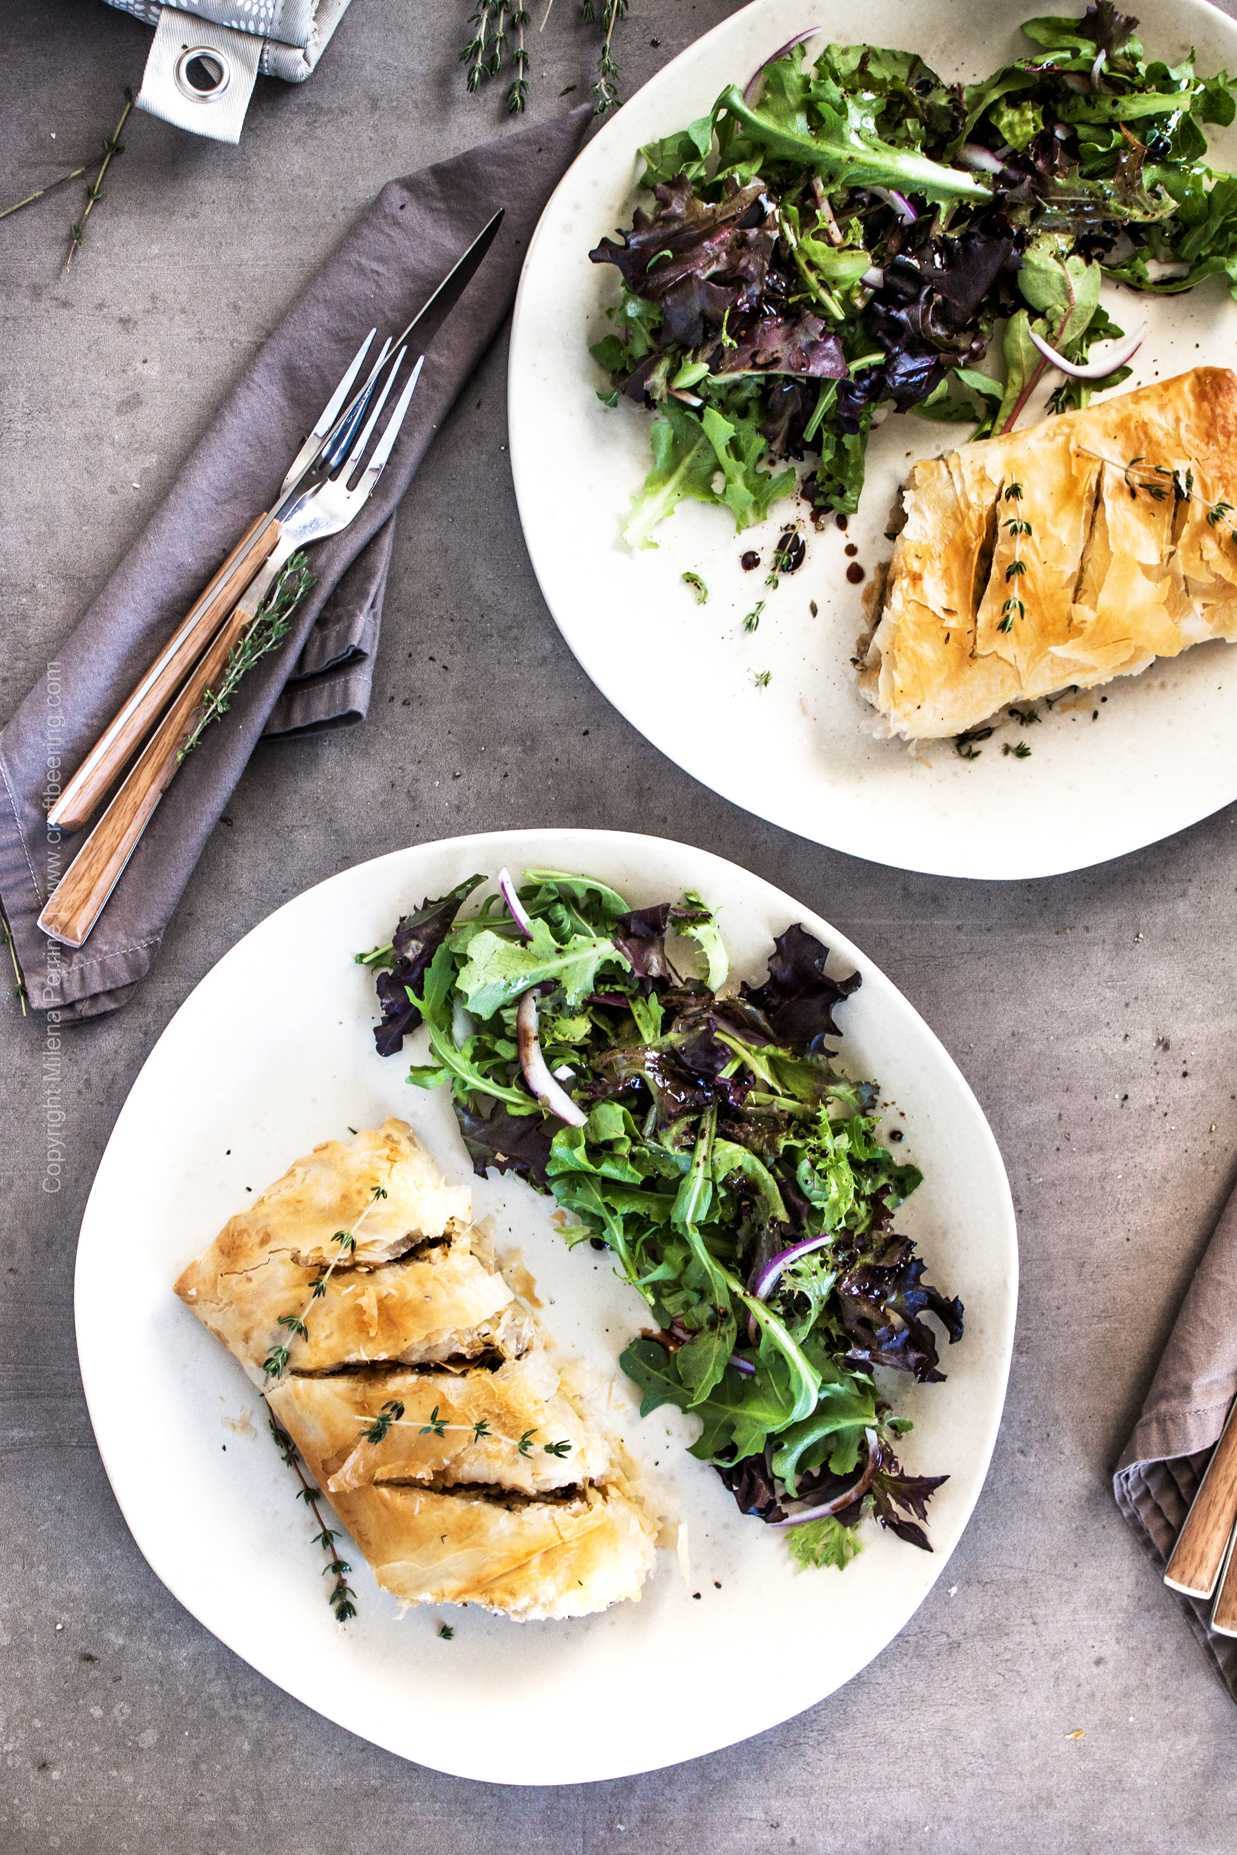 Savory goat cheese and mushroom strudel with puff pastry or phyllo dough.